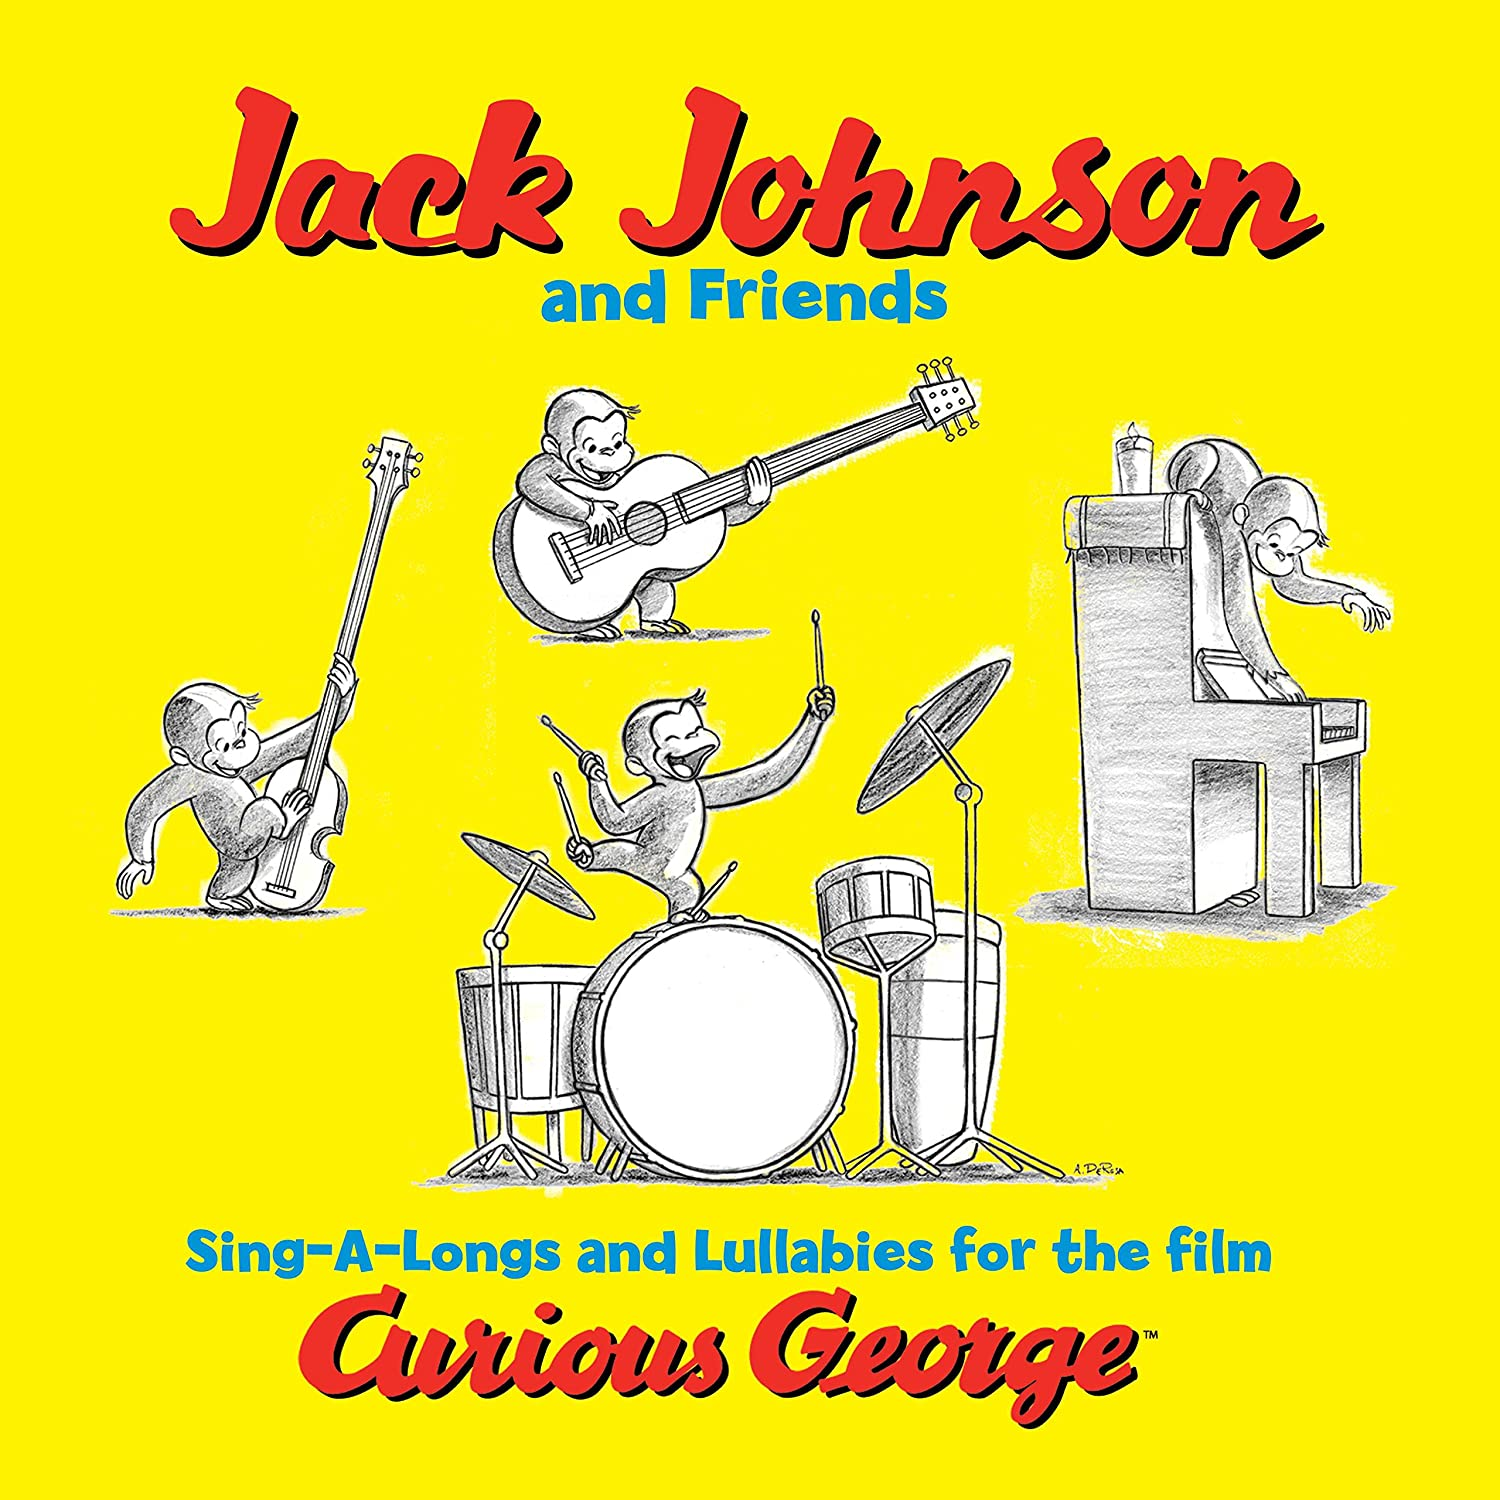 Jack Johnson & Friends, Sing-A-Longs and Lullabies for the Film Curious George